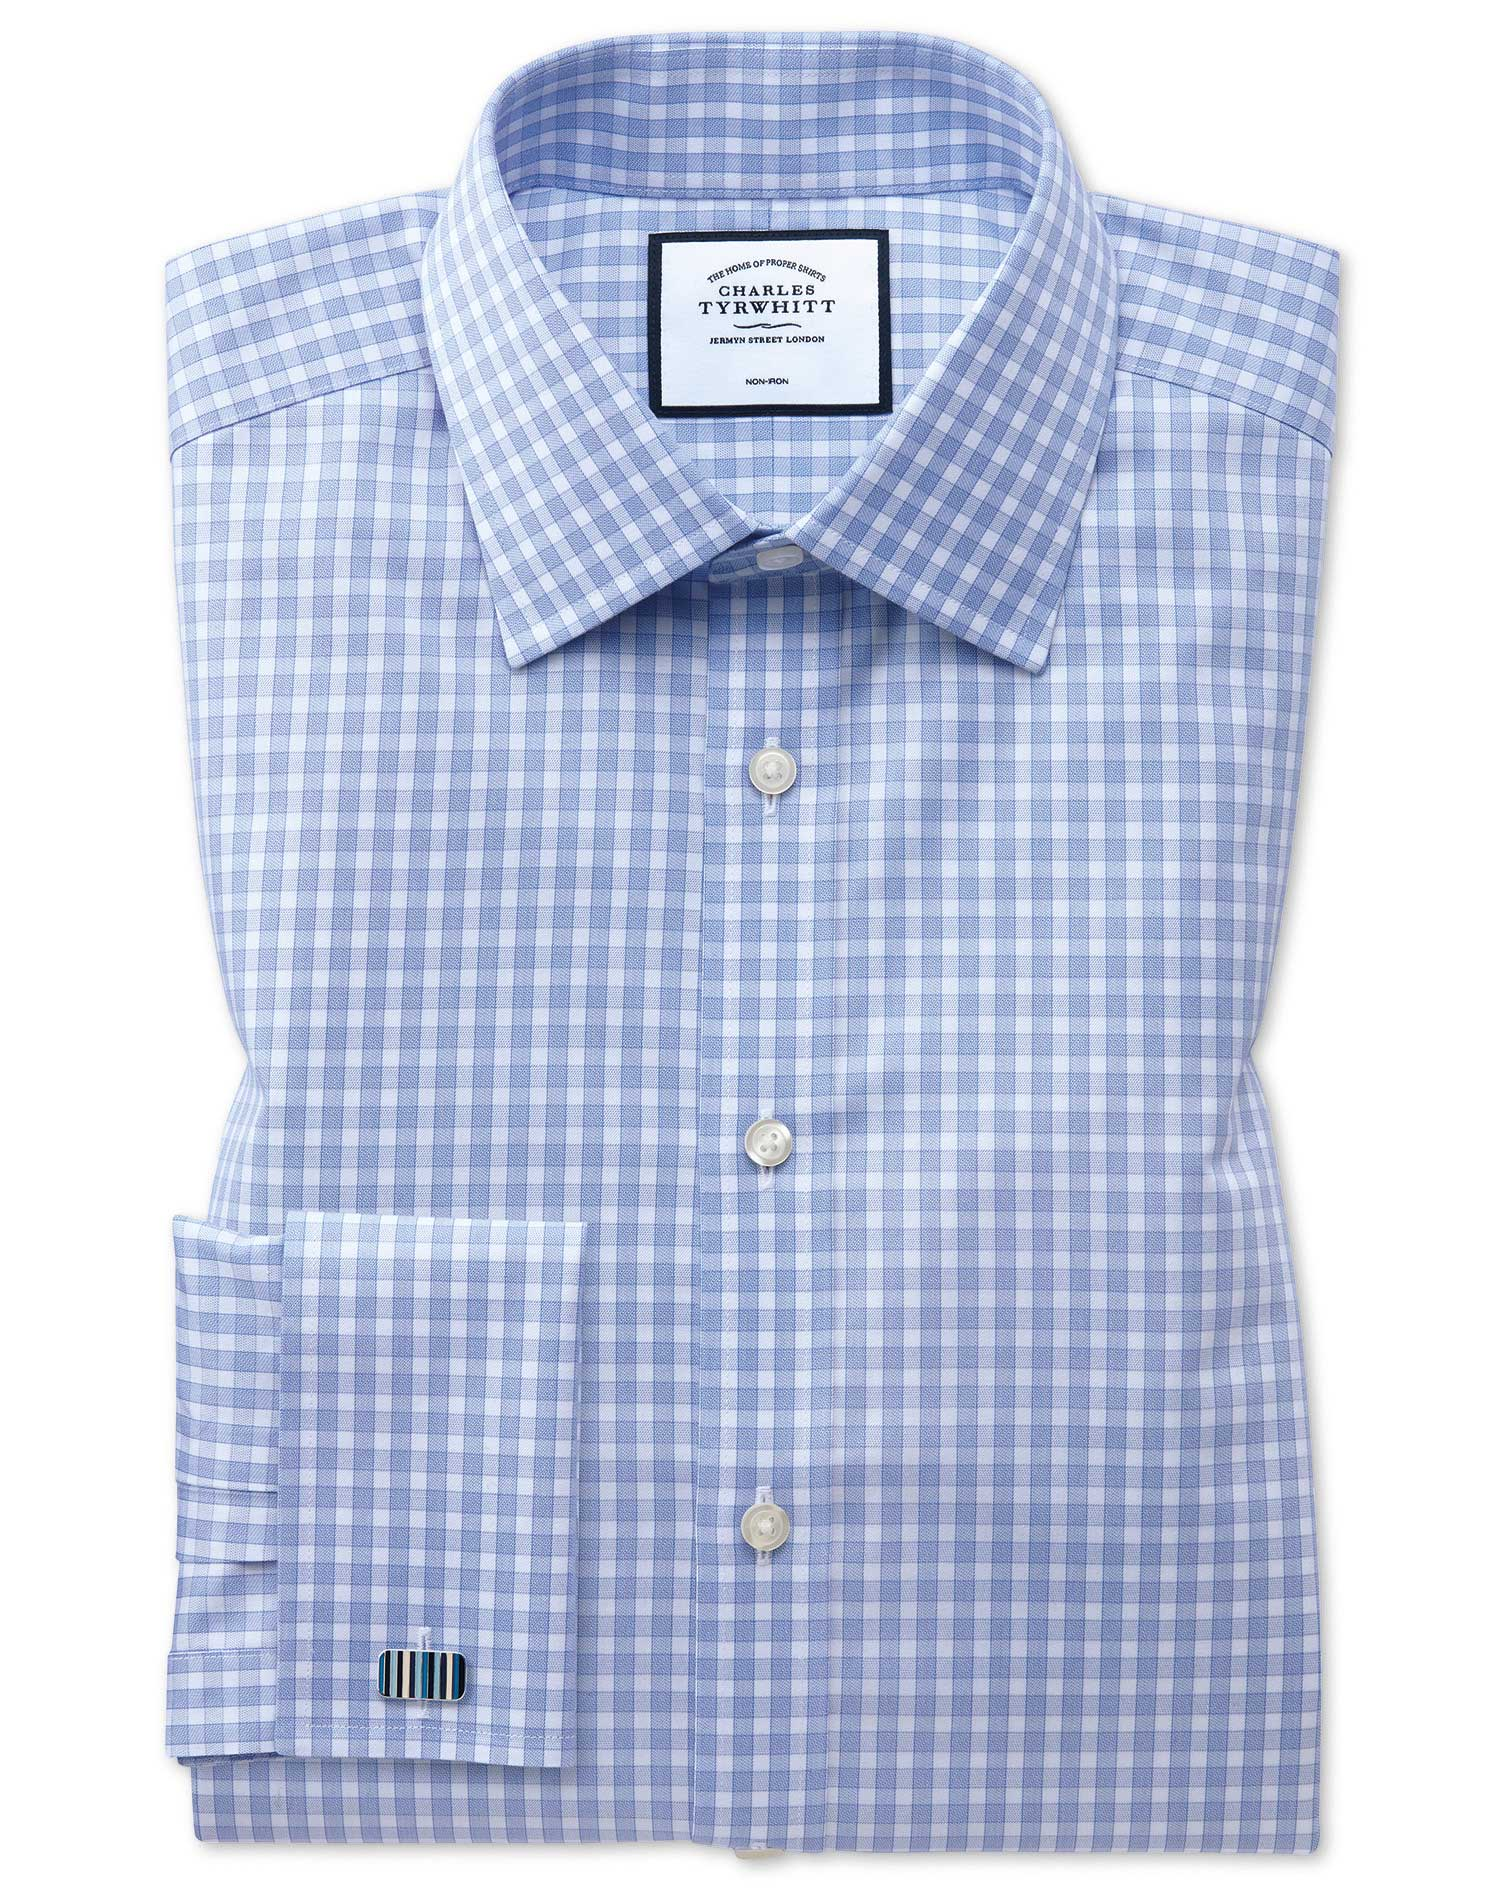 Classic Fit Non-Iron Twill Gingham Sky Blue Cotton Formal Shirt Single Cuff Size 17/38 by Charles Ty